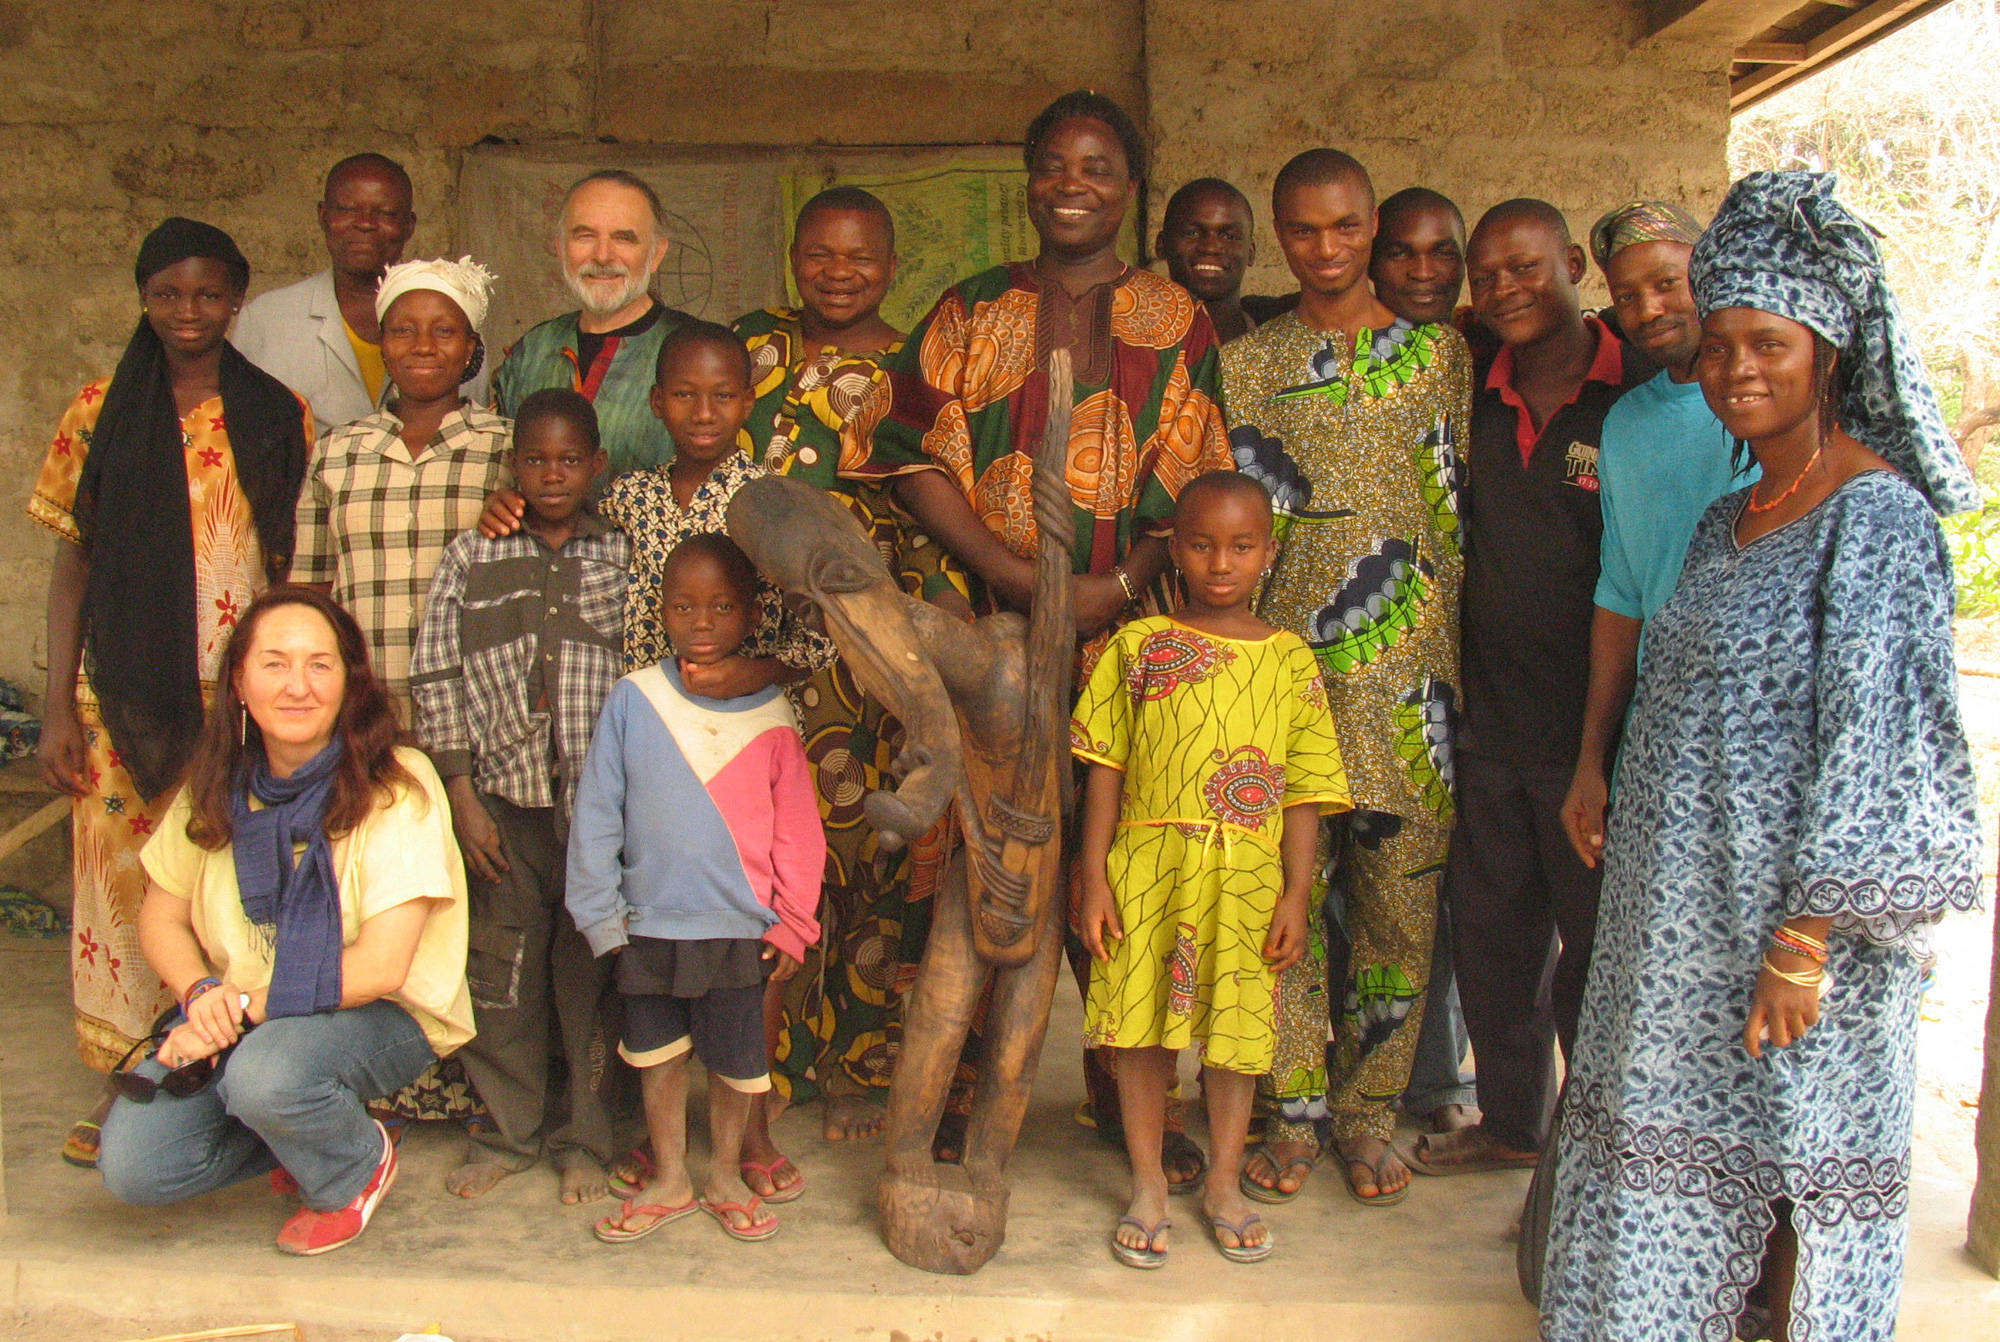 Wolfgang and Martha Denk at the woodcarver's workshop of Wenger's artist colleague Kasali Akangbe and his son Adekunle, in the middle Wenger's son,artist Ṣàngódáre Gbádégeṣin Àjàlá, right Wenger's daughter Adédoyin Fáníyi Ọlọ́ṣun.©Wolfgang Denk